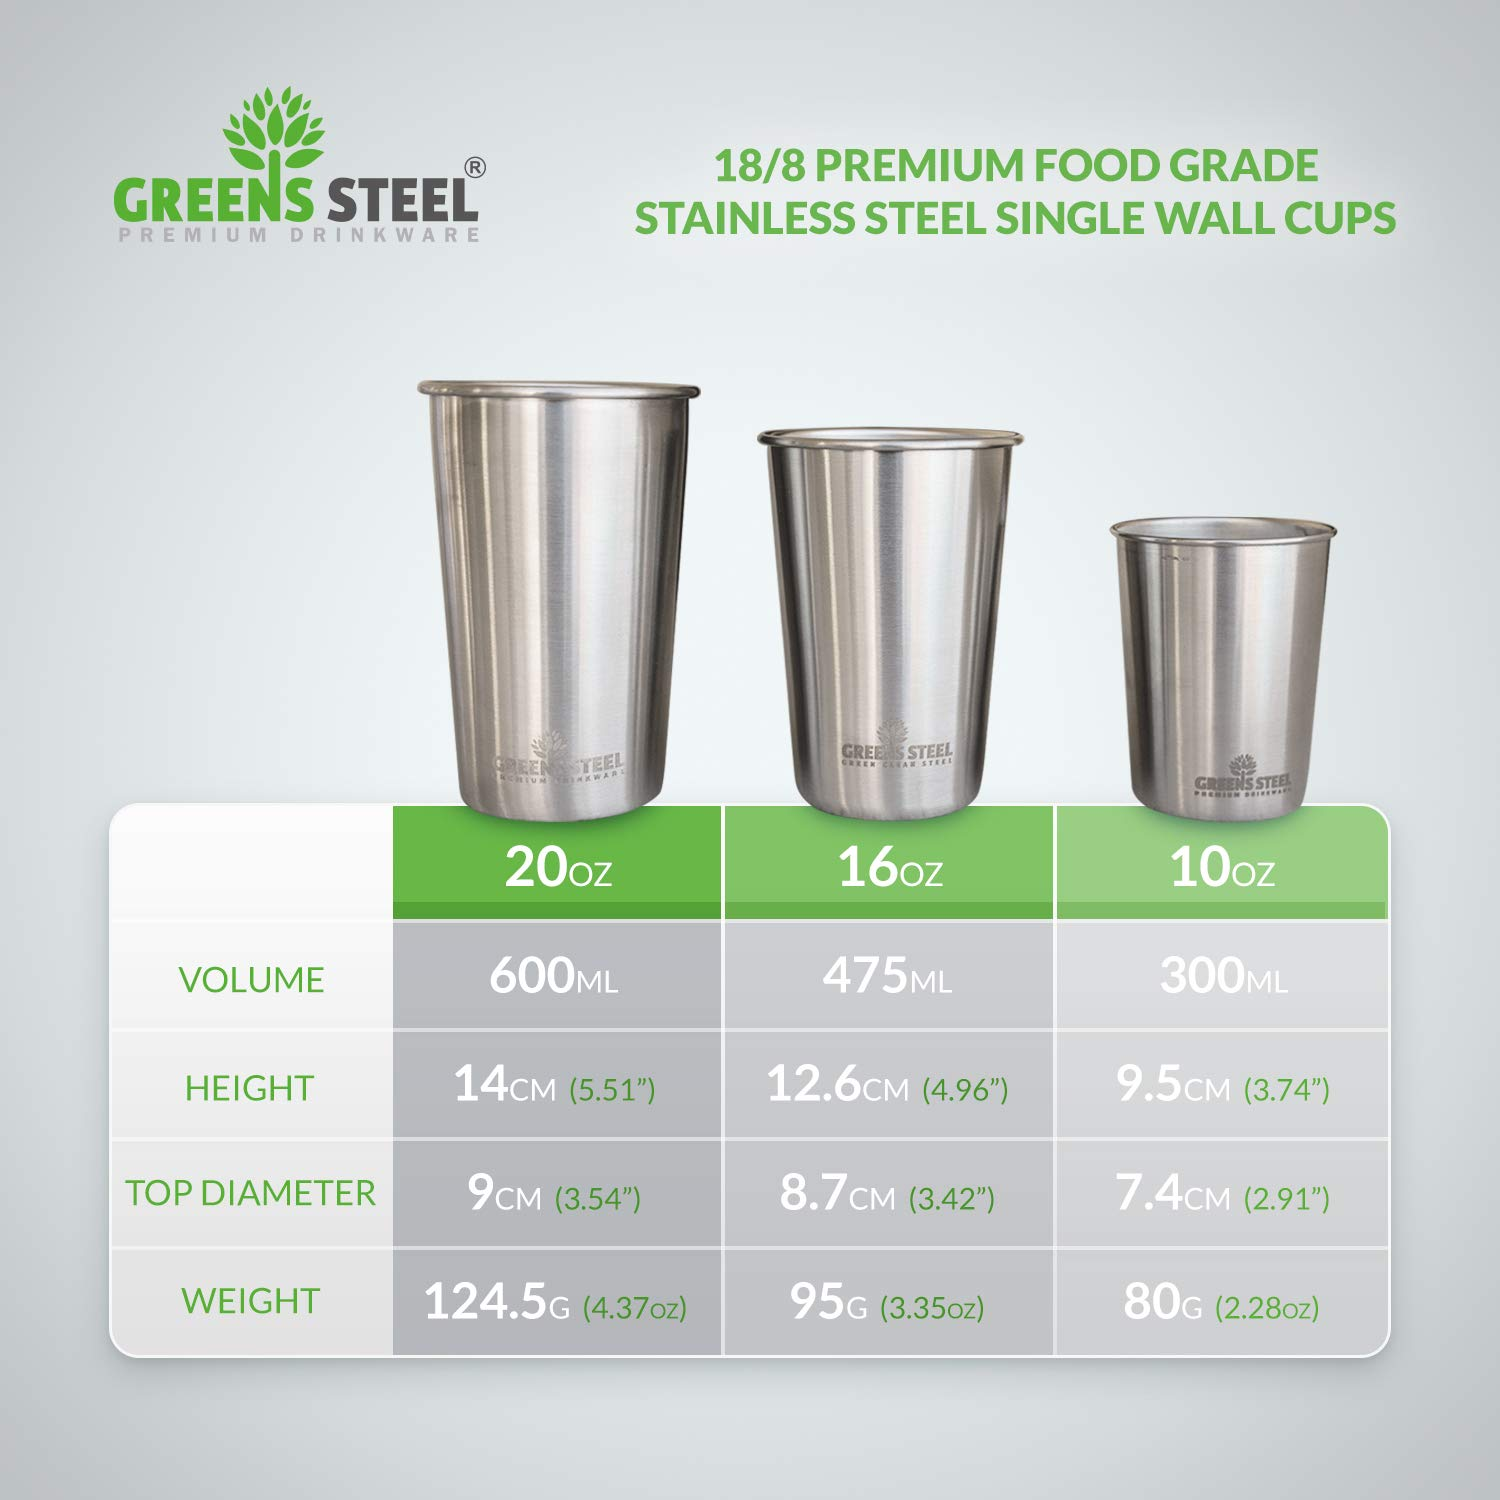 10oz Stainless Steel Cups - Metal Cups For Kids - BPA free (4 Pack) by Greens Steel (Image #6)